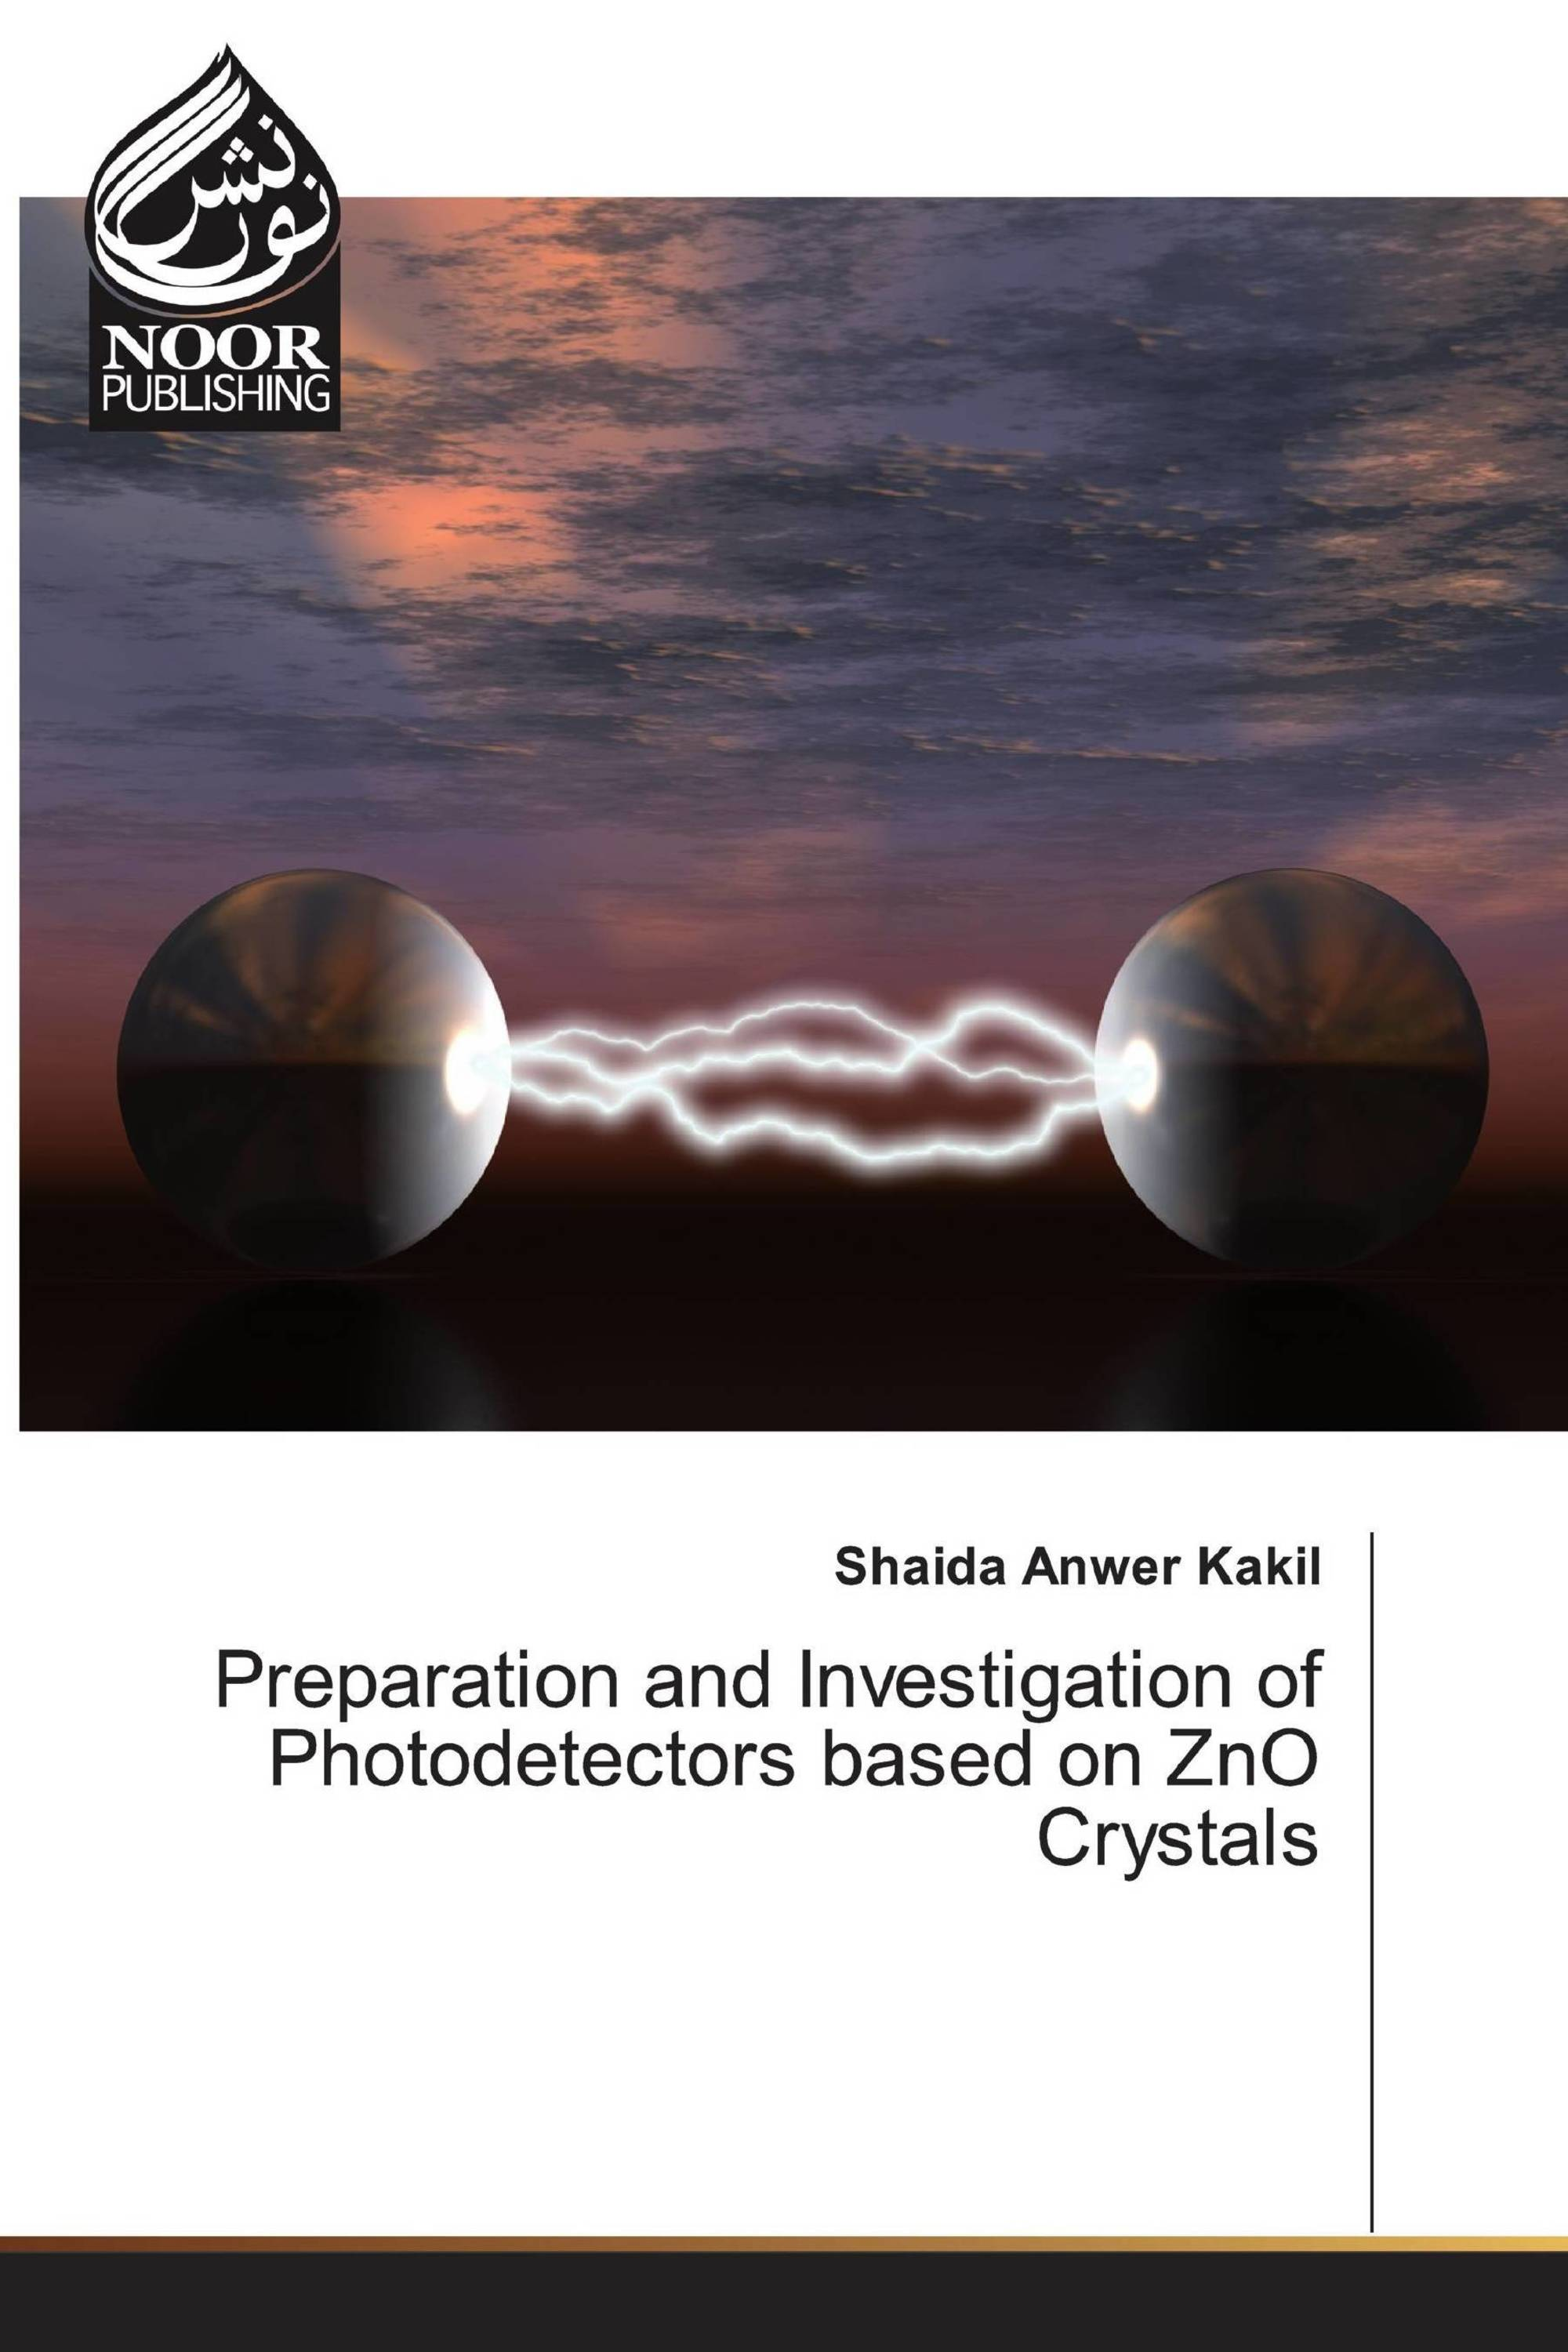 Preparation and Investigation of Photodetectors based on ZnO Crystals